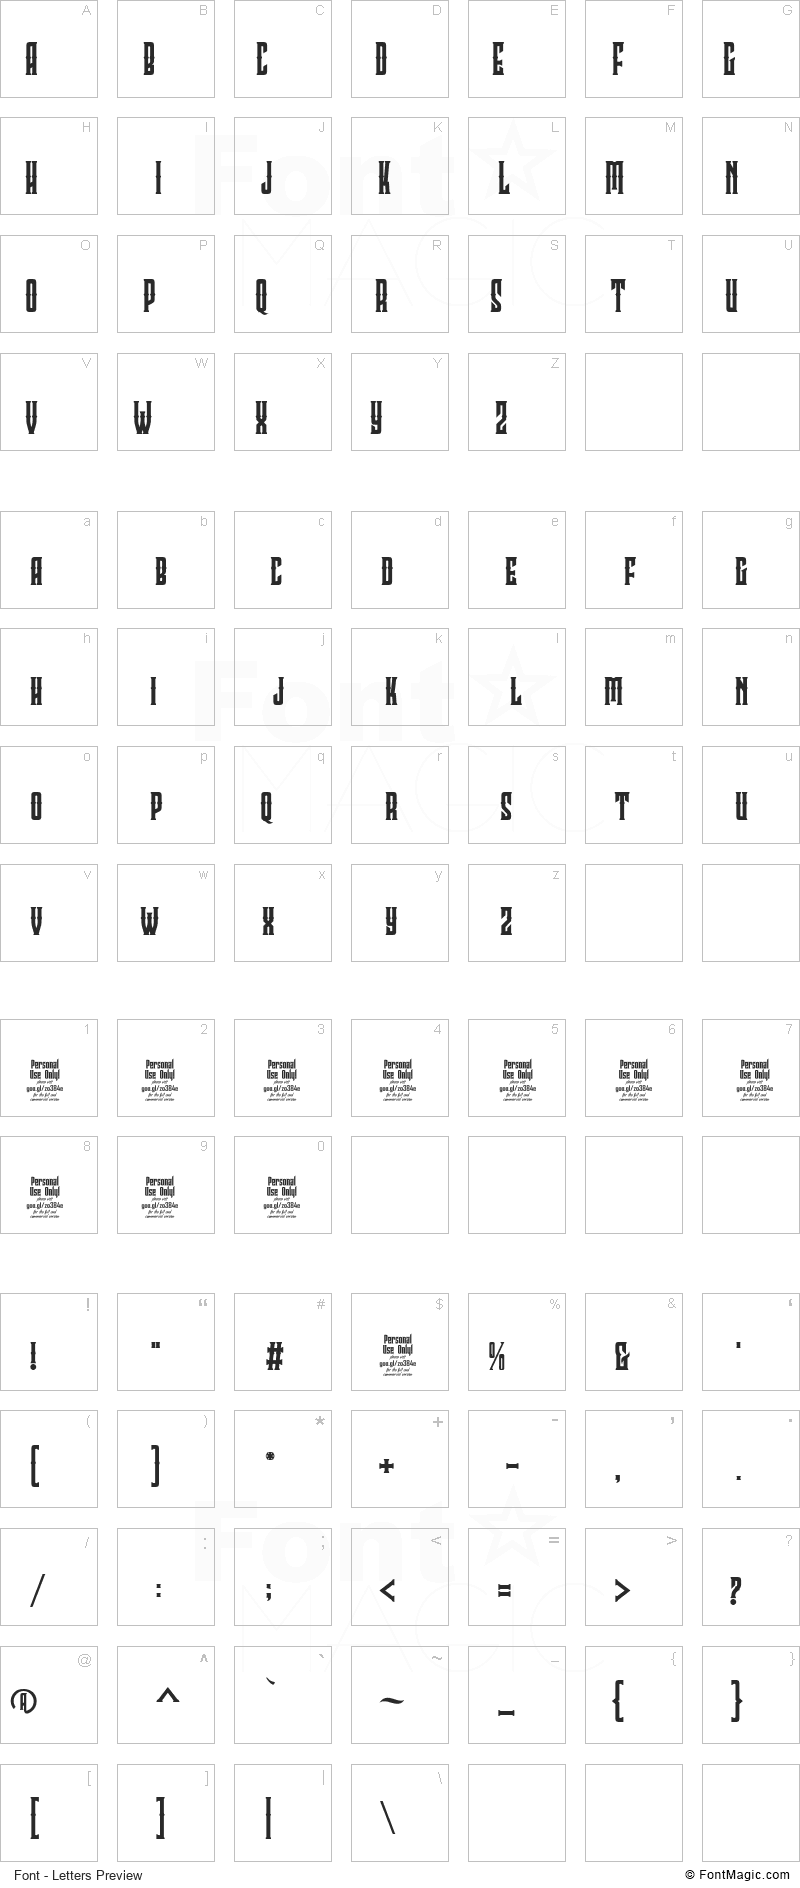 Clobot Font - All Latters Preview Chart